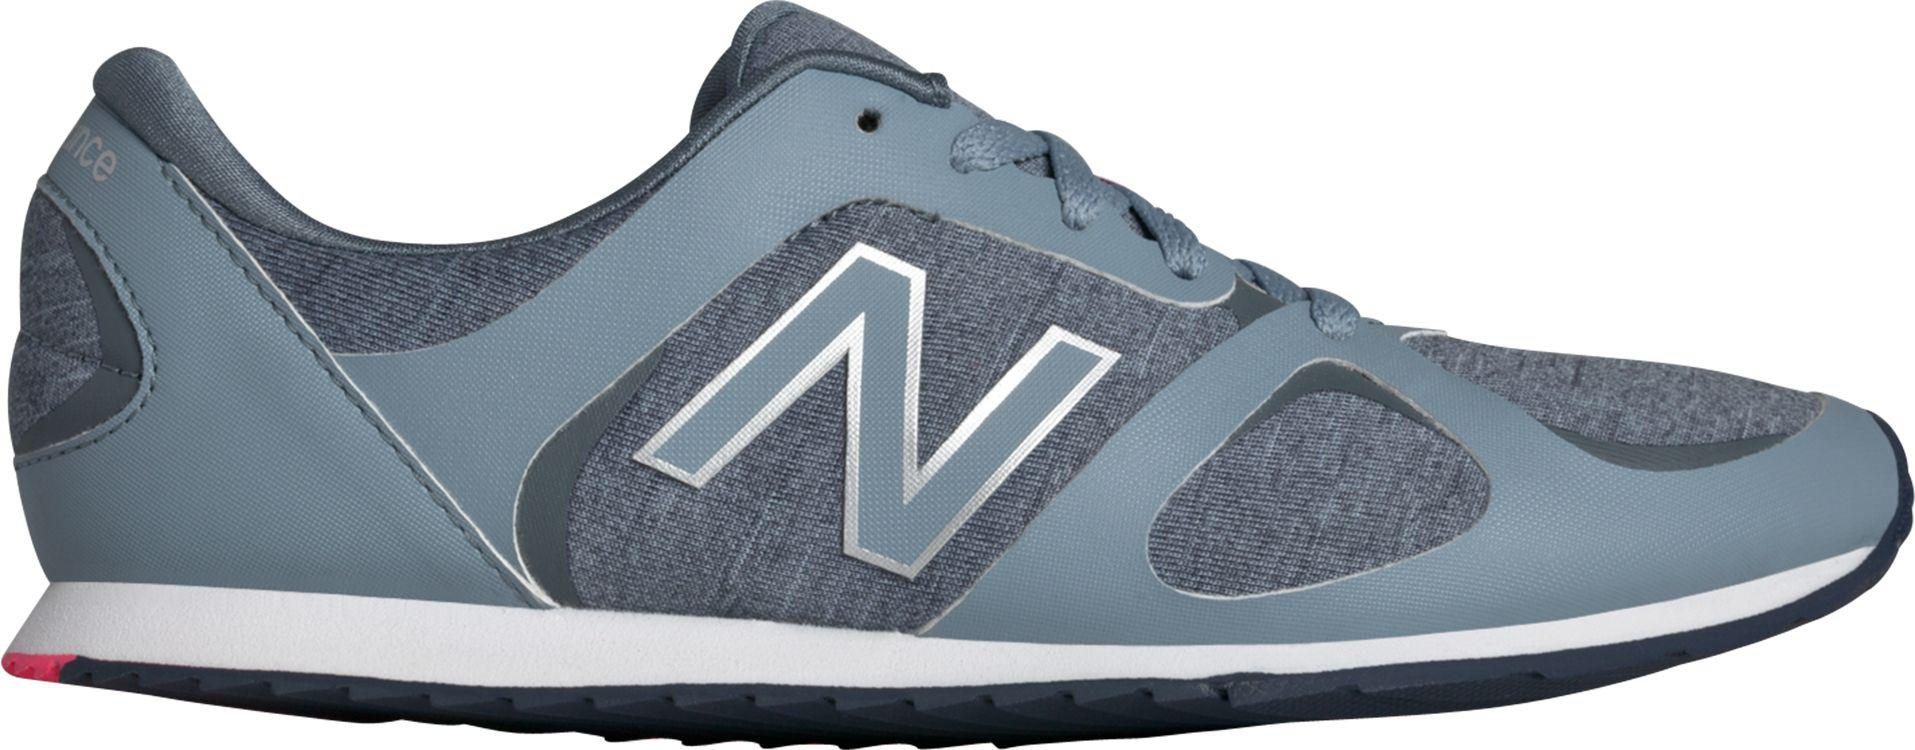 New Balance Suede 555 Flip Duo Casual